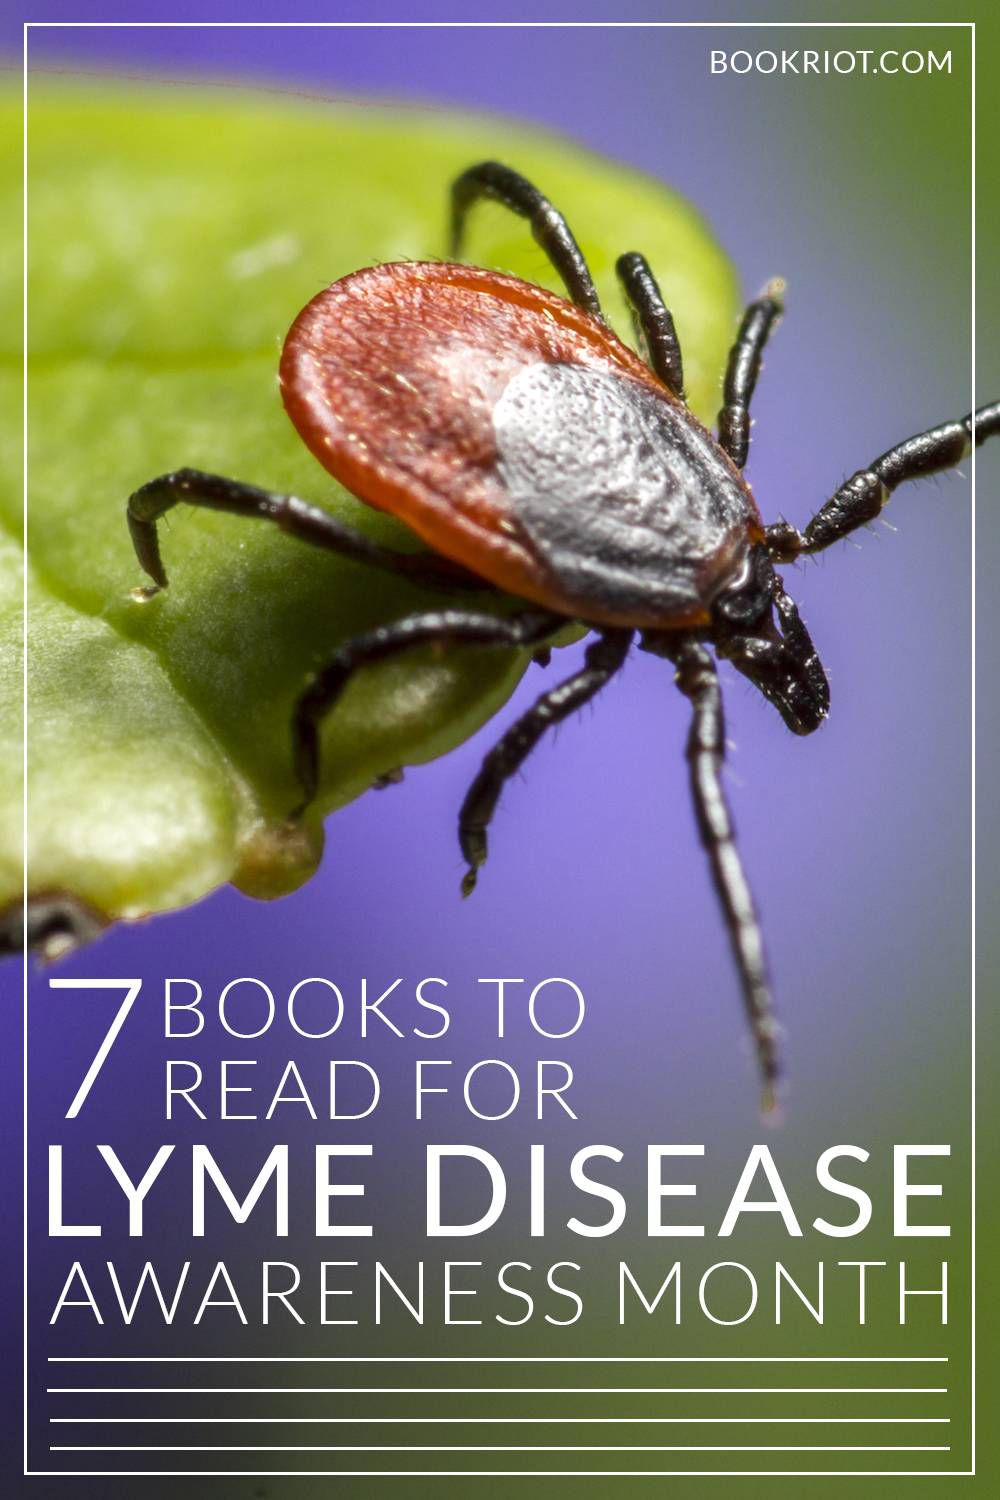 Tick season is here! Read up on Lyme disease and keep your family safe!